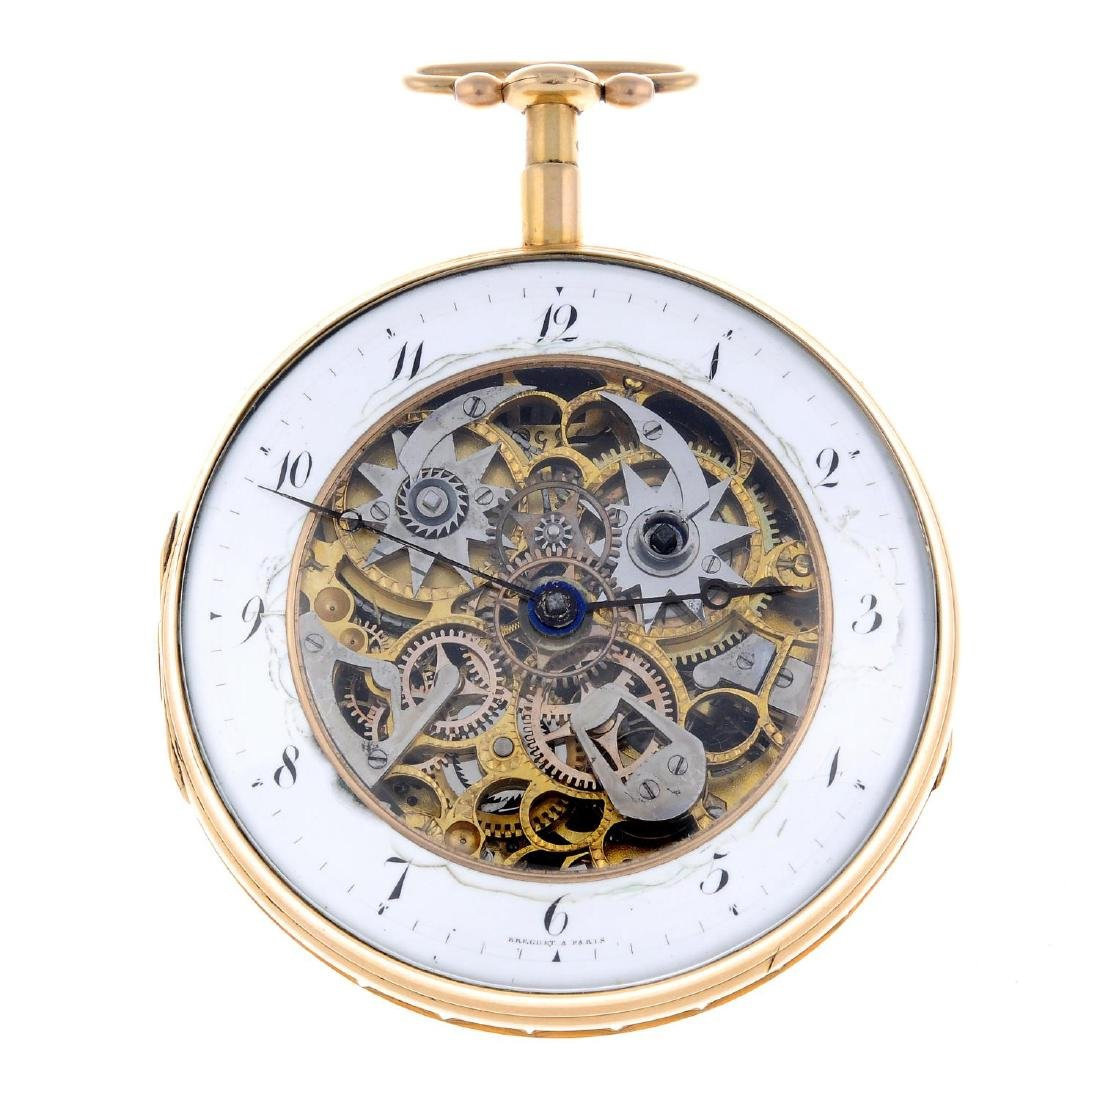 An open face quarter repeater pocket watch signed